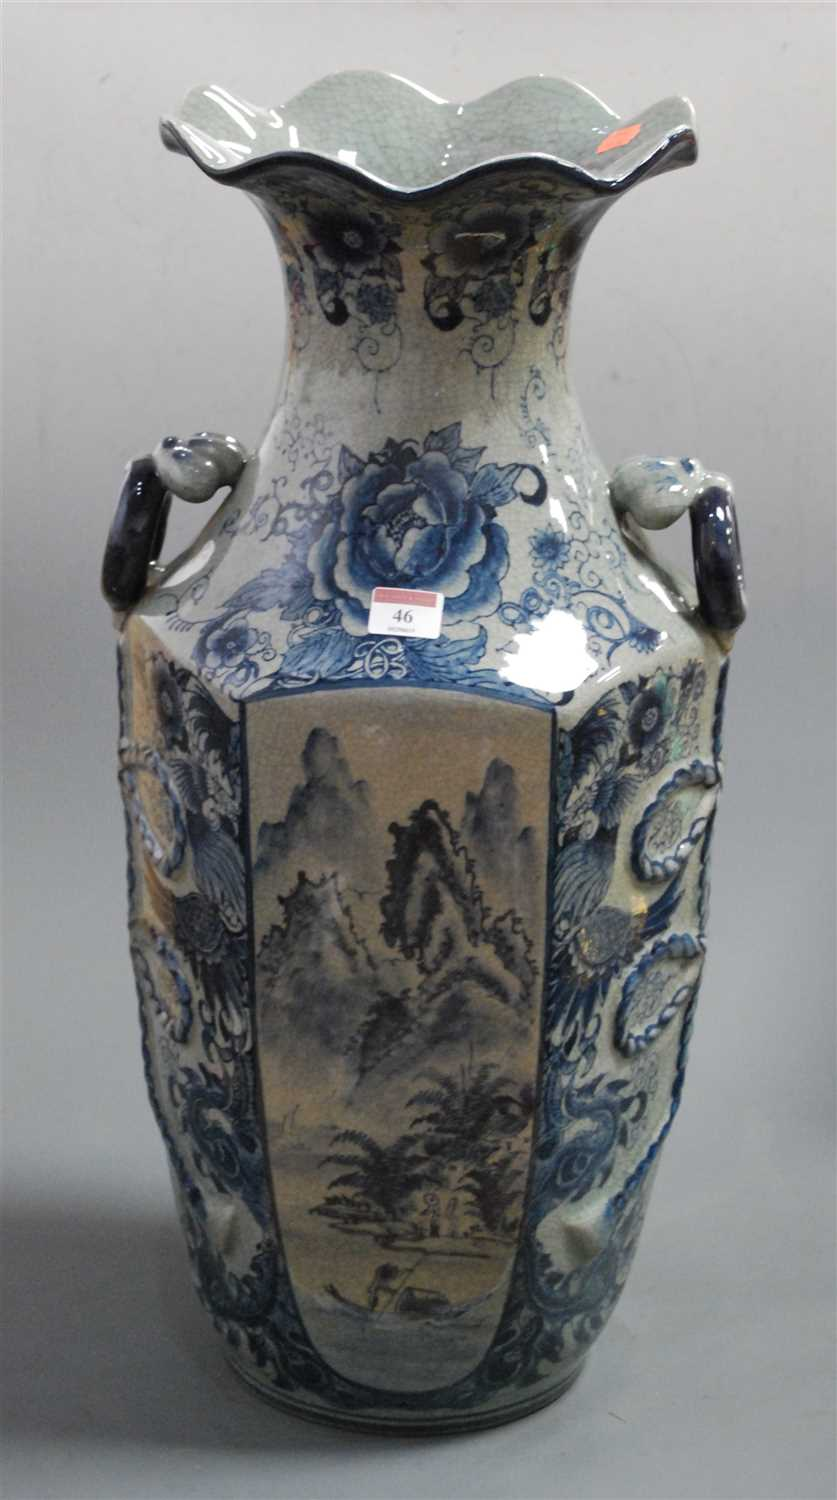 Lot 46 - A reproduction Chinese style blue & white vase...